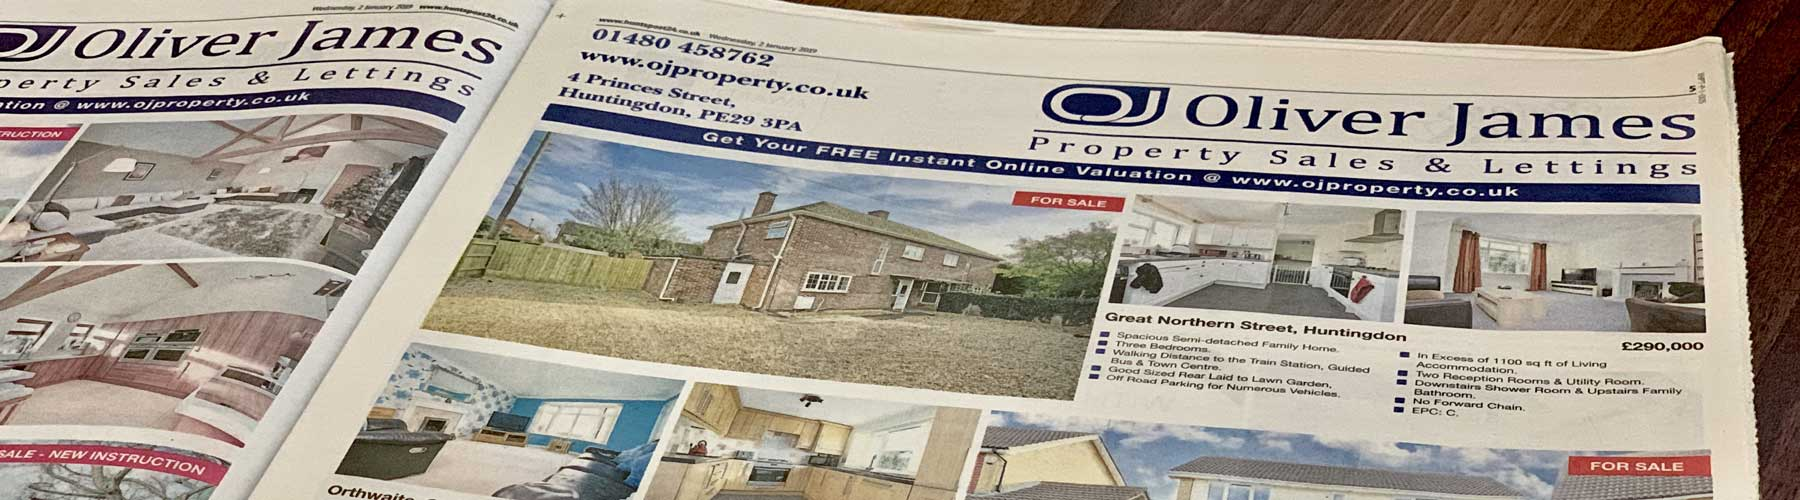 Lettings Service